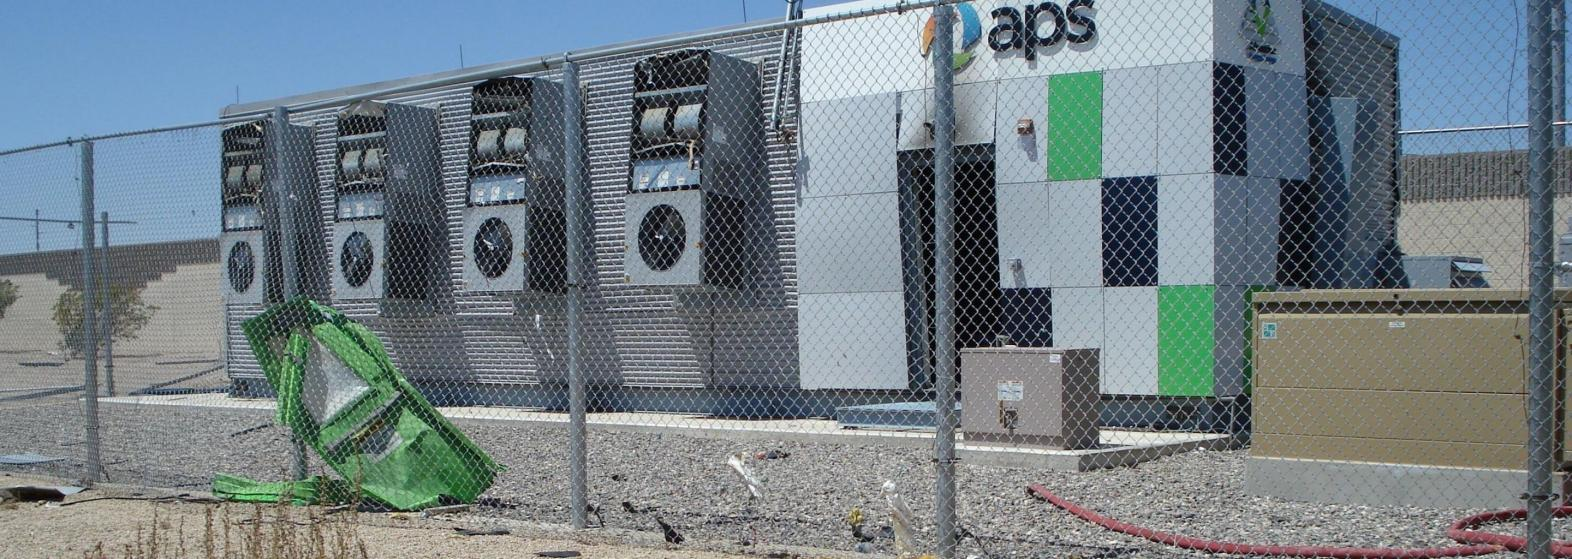 Energy storage system with walls bowed out and broken fence with the door to system leaning on fence after an explosion